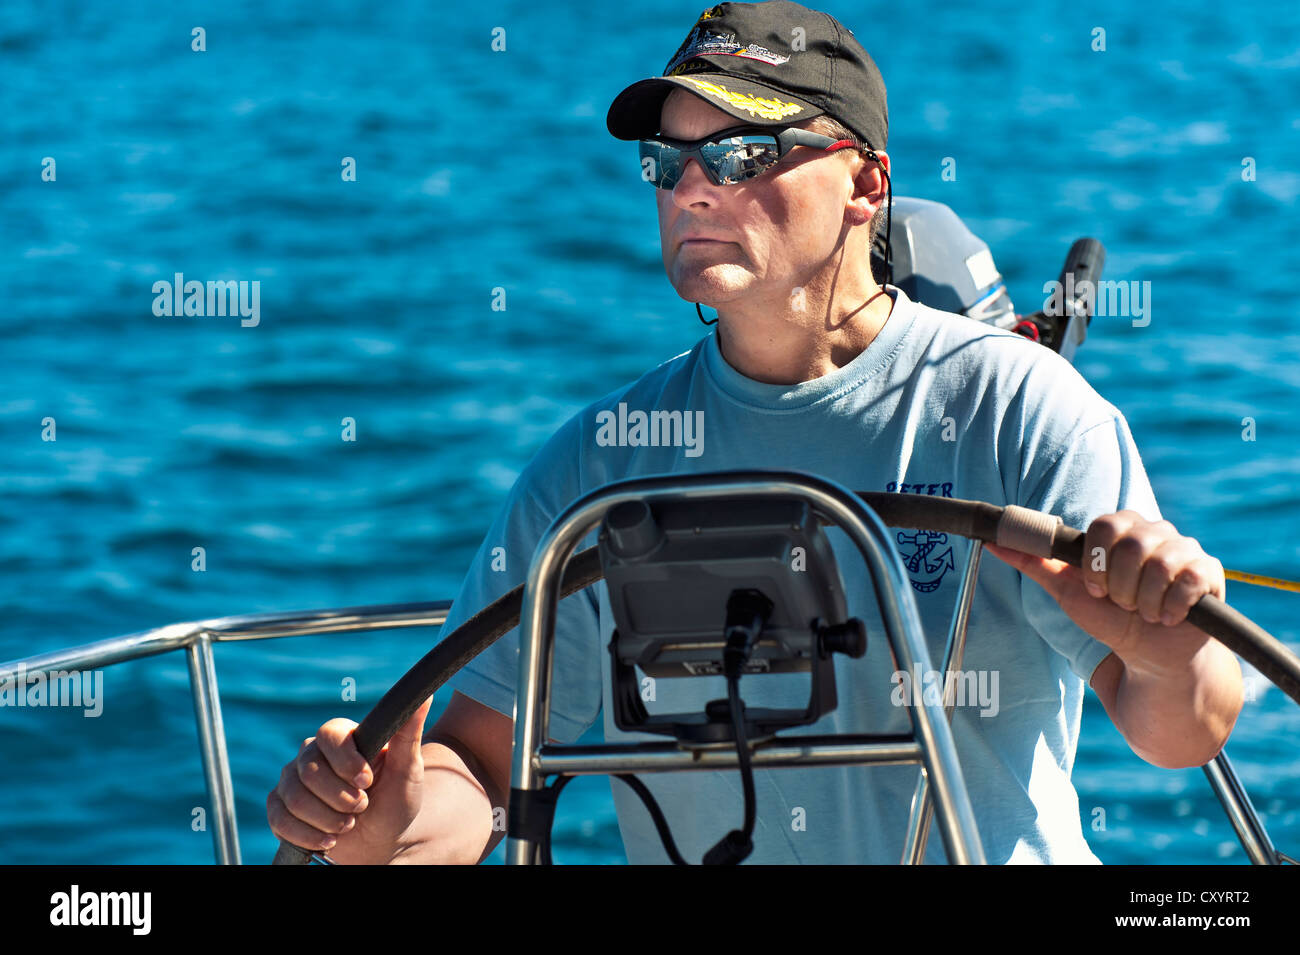 Skipper at the helm of his sailing yacht Stock Photo